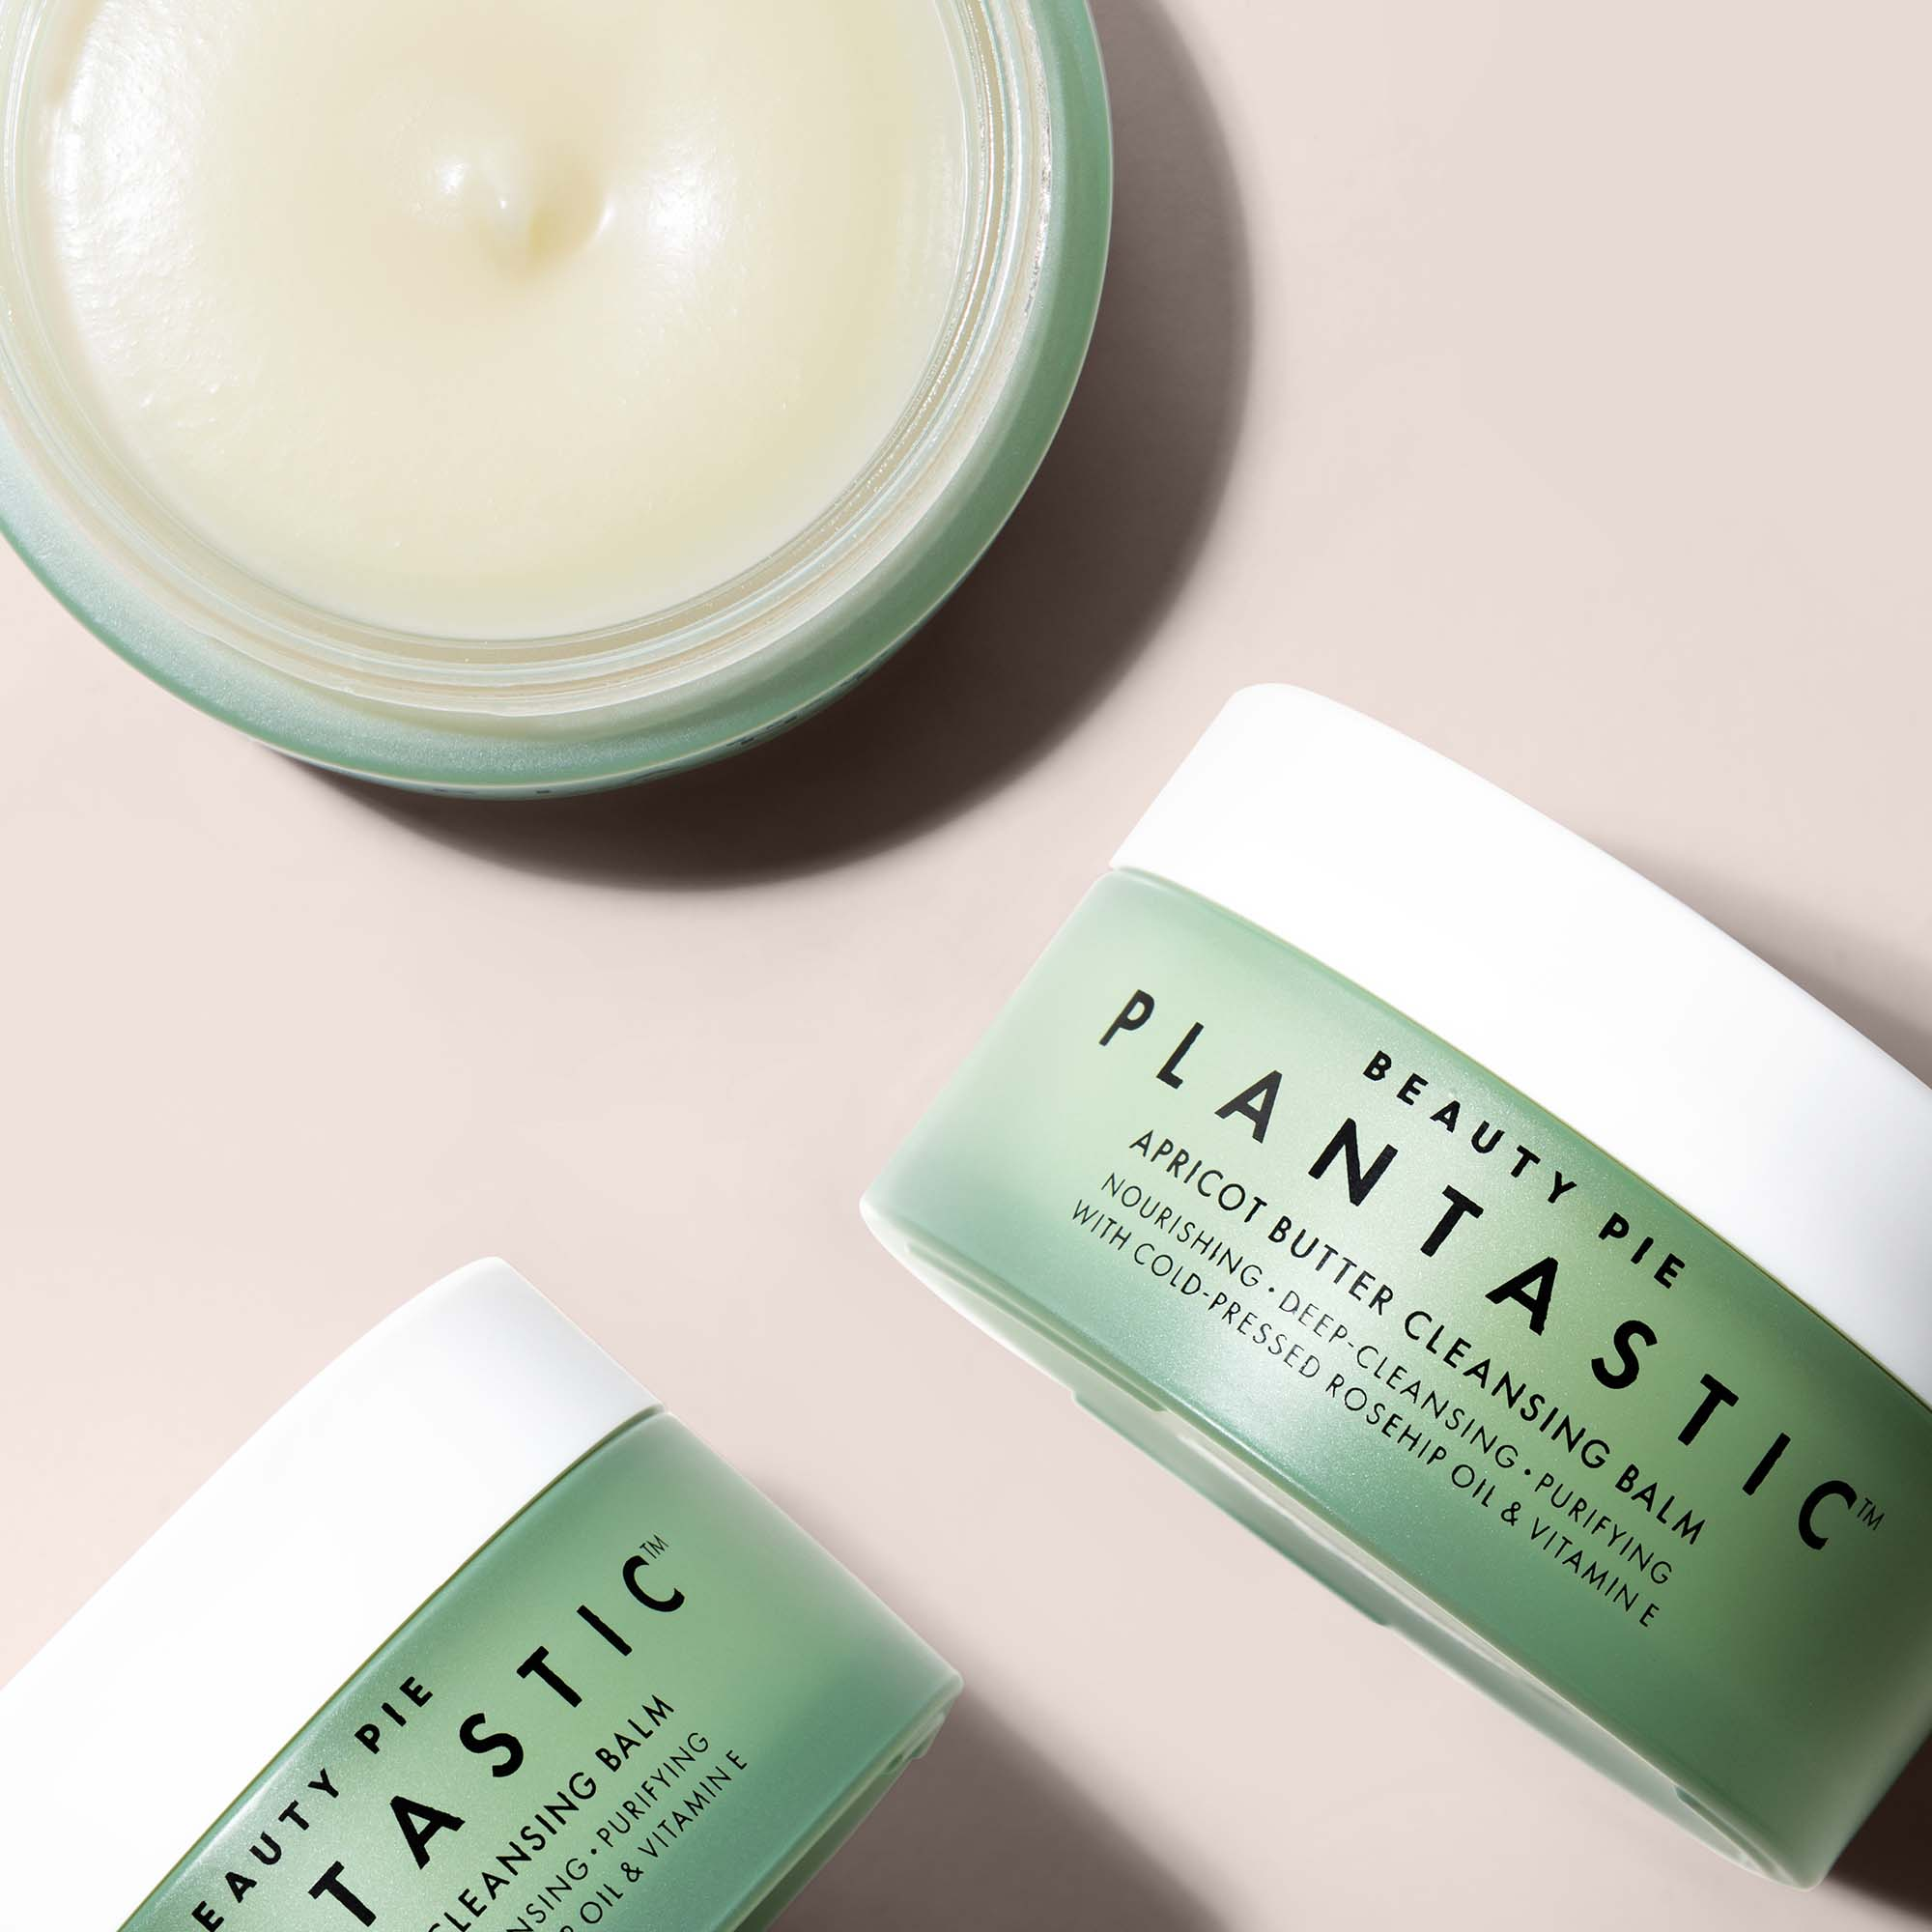 Plantastic™ Apricot Butter Cleansing Balm by Beauty Pie